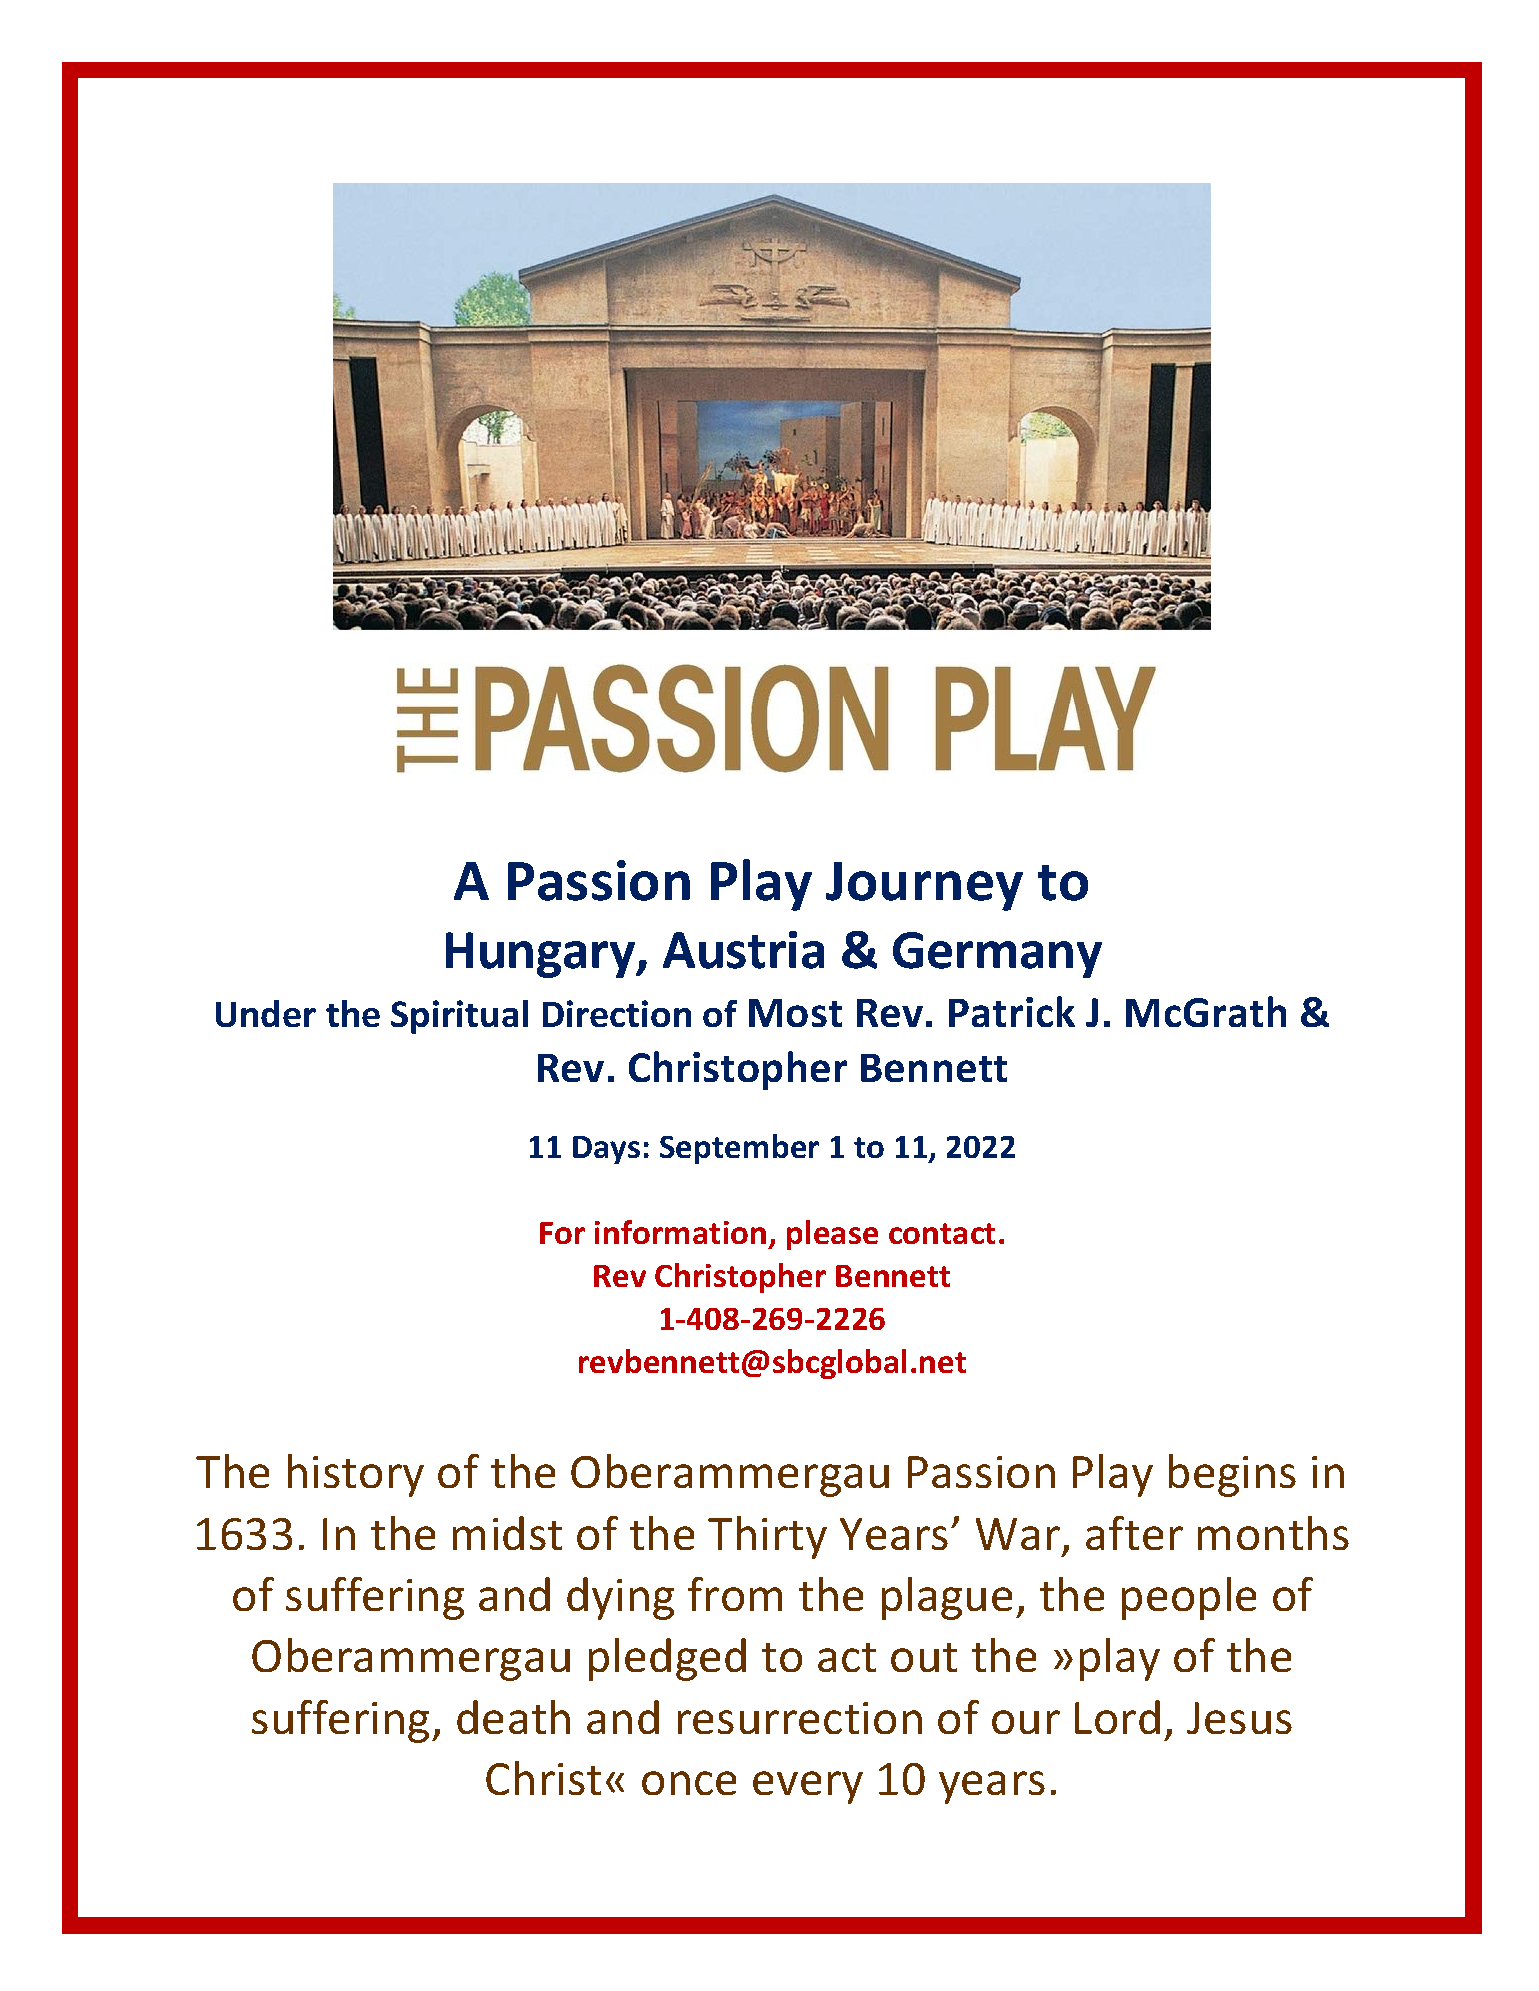 A Passion Play Journey to Hungary, Austria & Germany